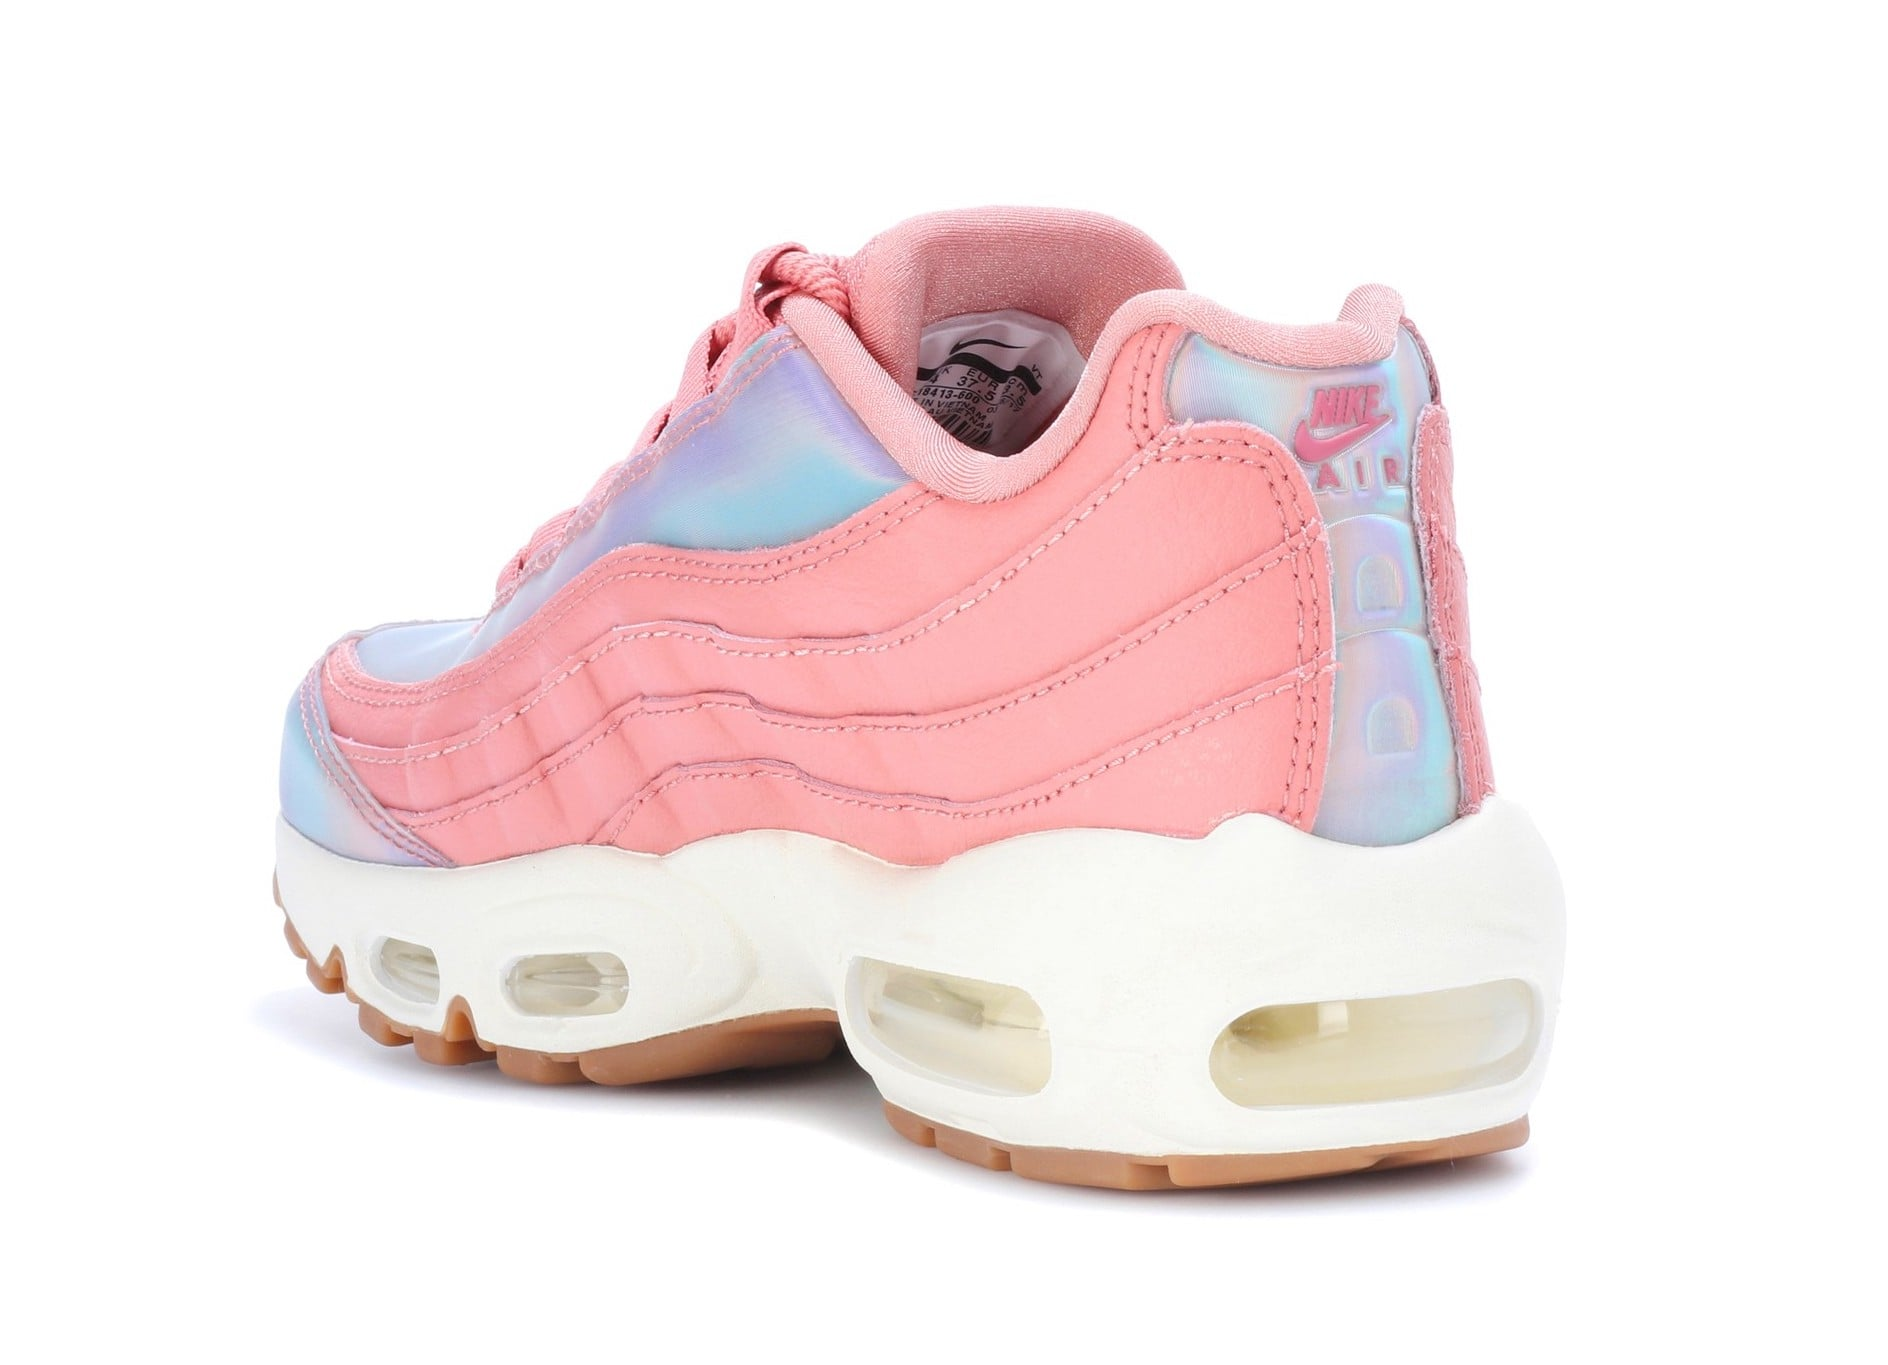 115d7db70d0 Check them out and consider treating yourself. Nothing can turn a bad day  around quite like some shiny pastel shoes. You totally deserve them.